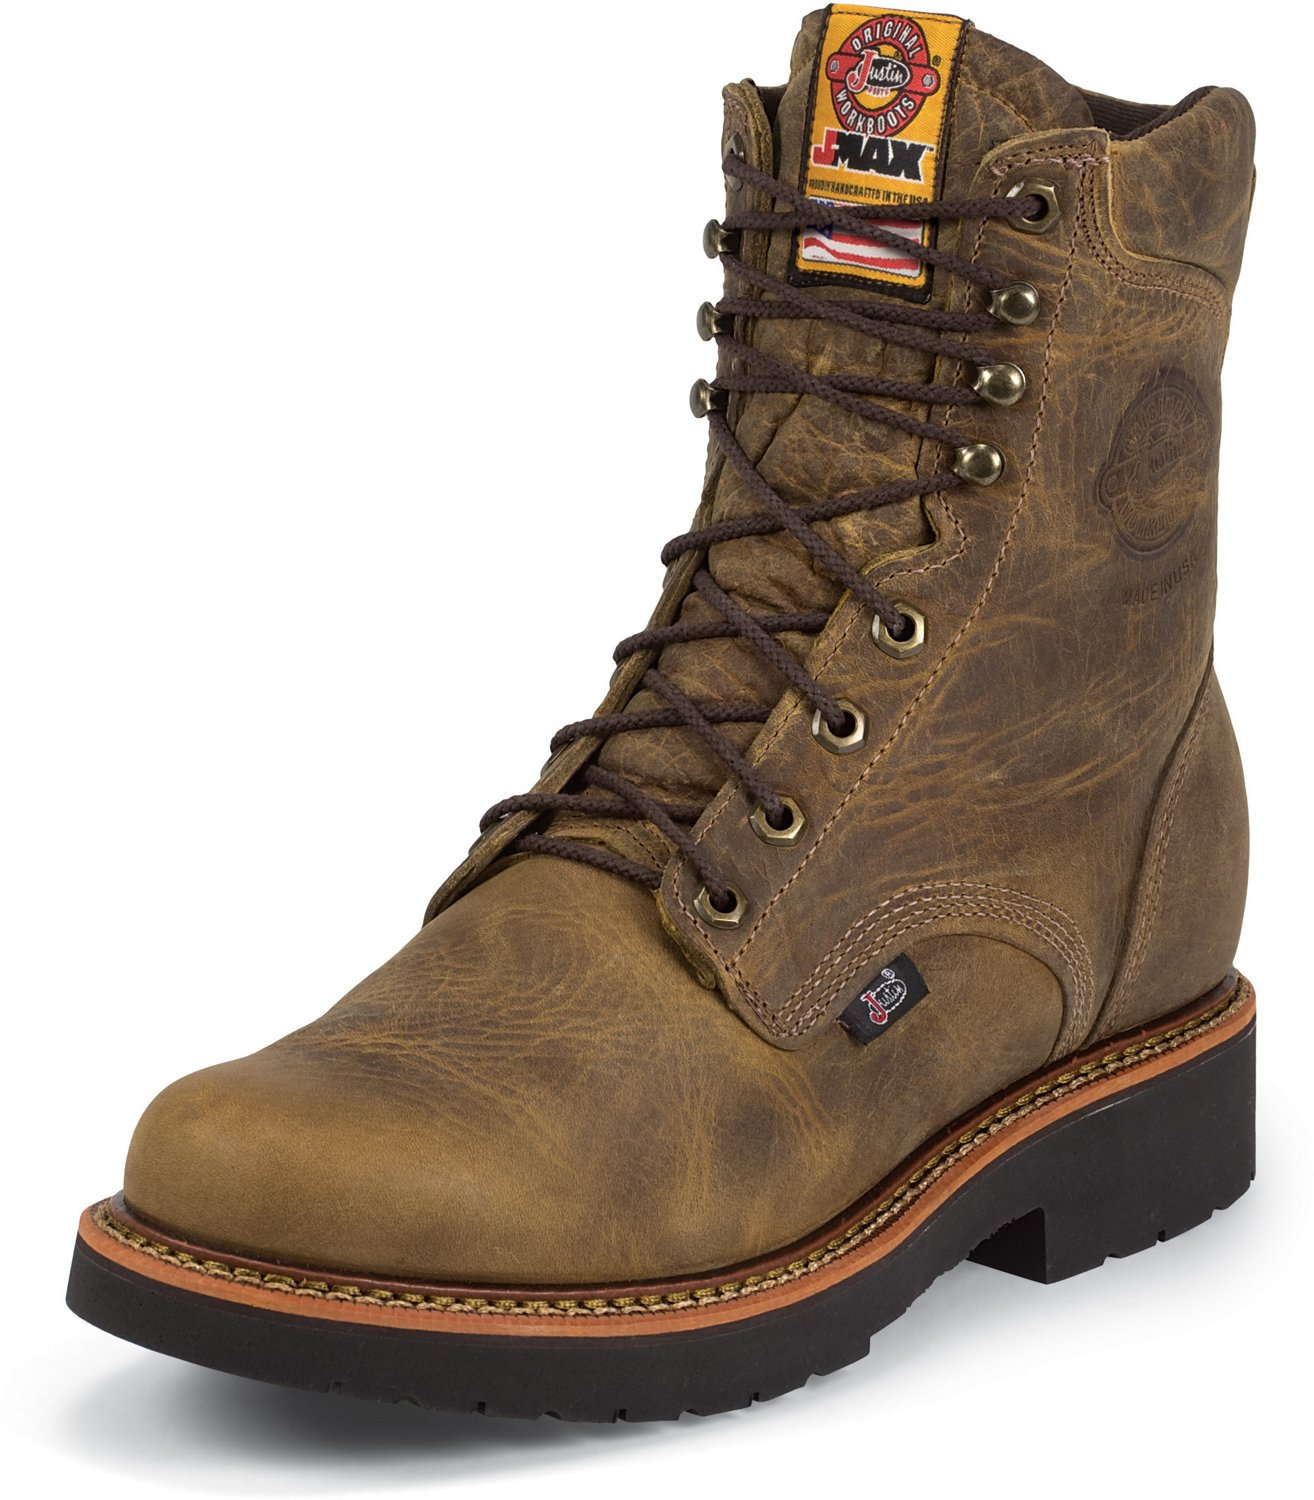 9f5ecf14 Display product reviews for Justin Men's Rugged Gaucho EH Steel-Toe Lace Up Work  Boots